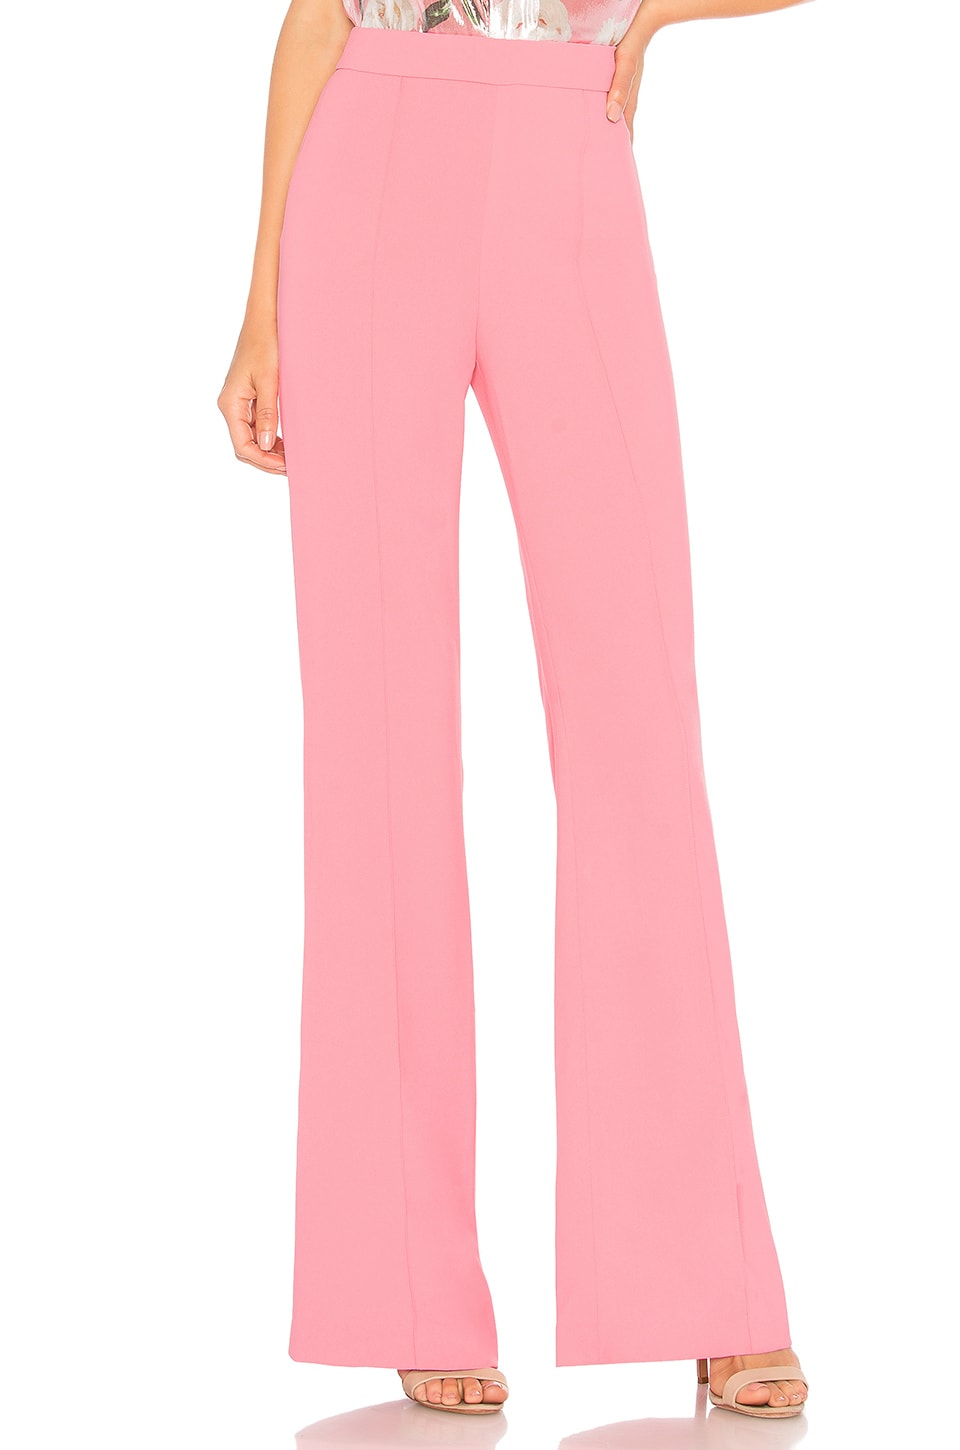 Alice + Olivia Jalisa Pant in Bubblegum